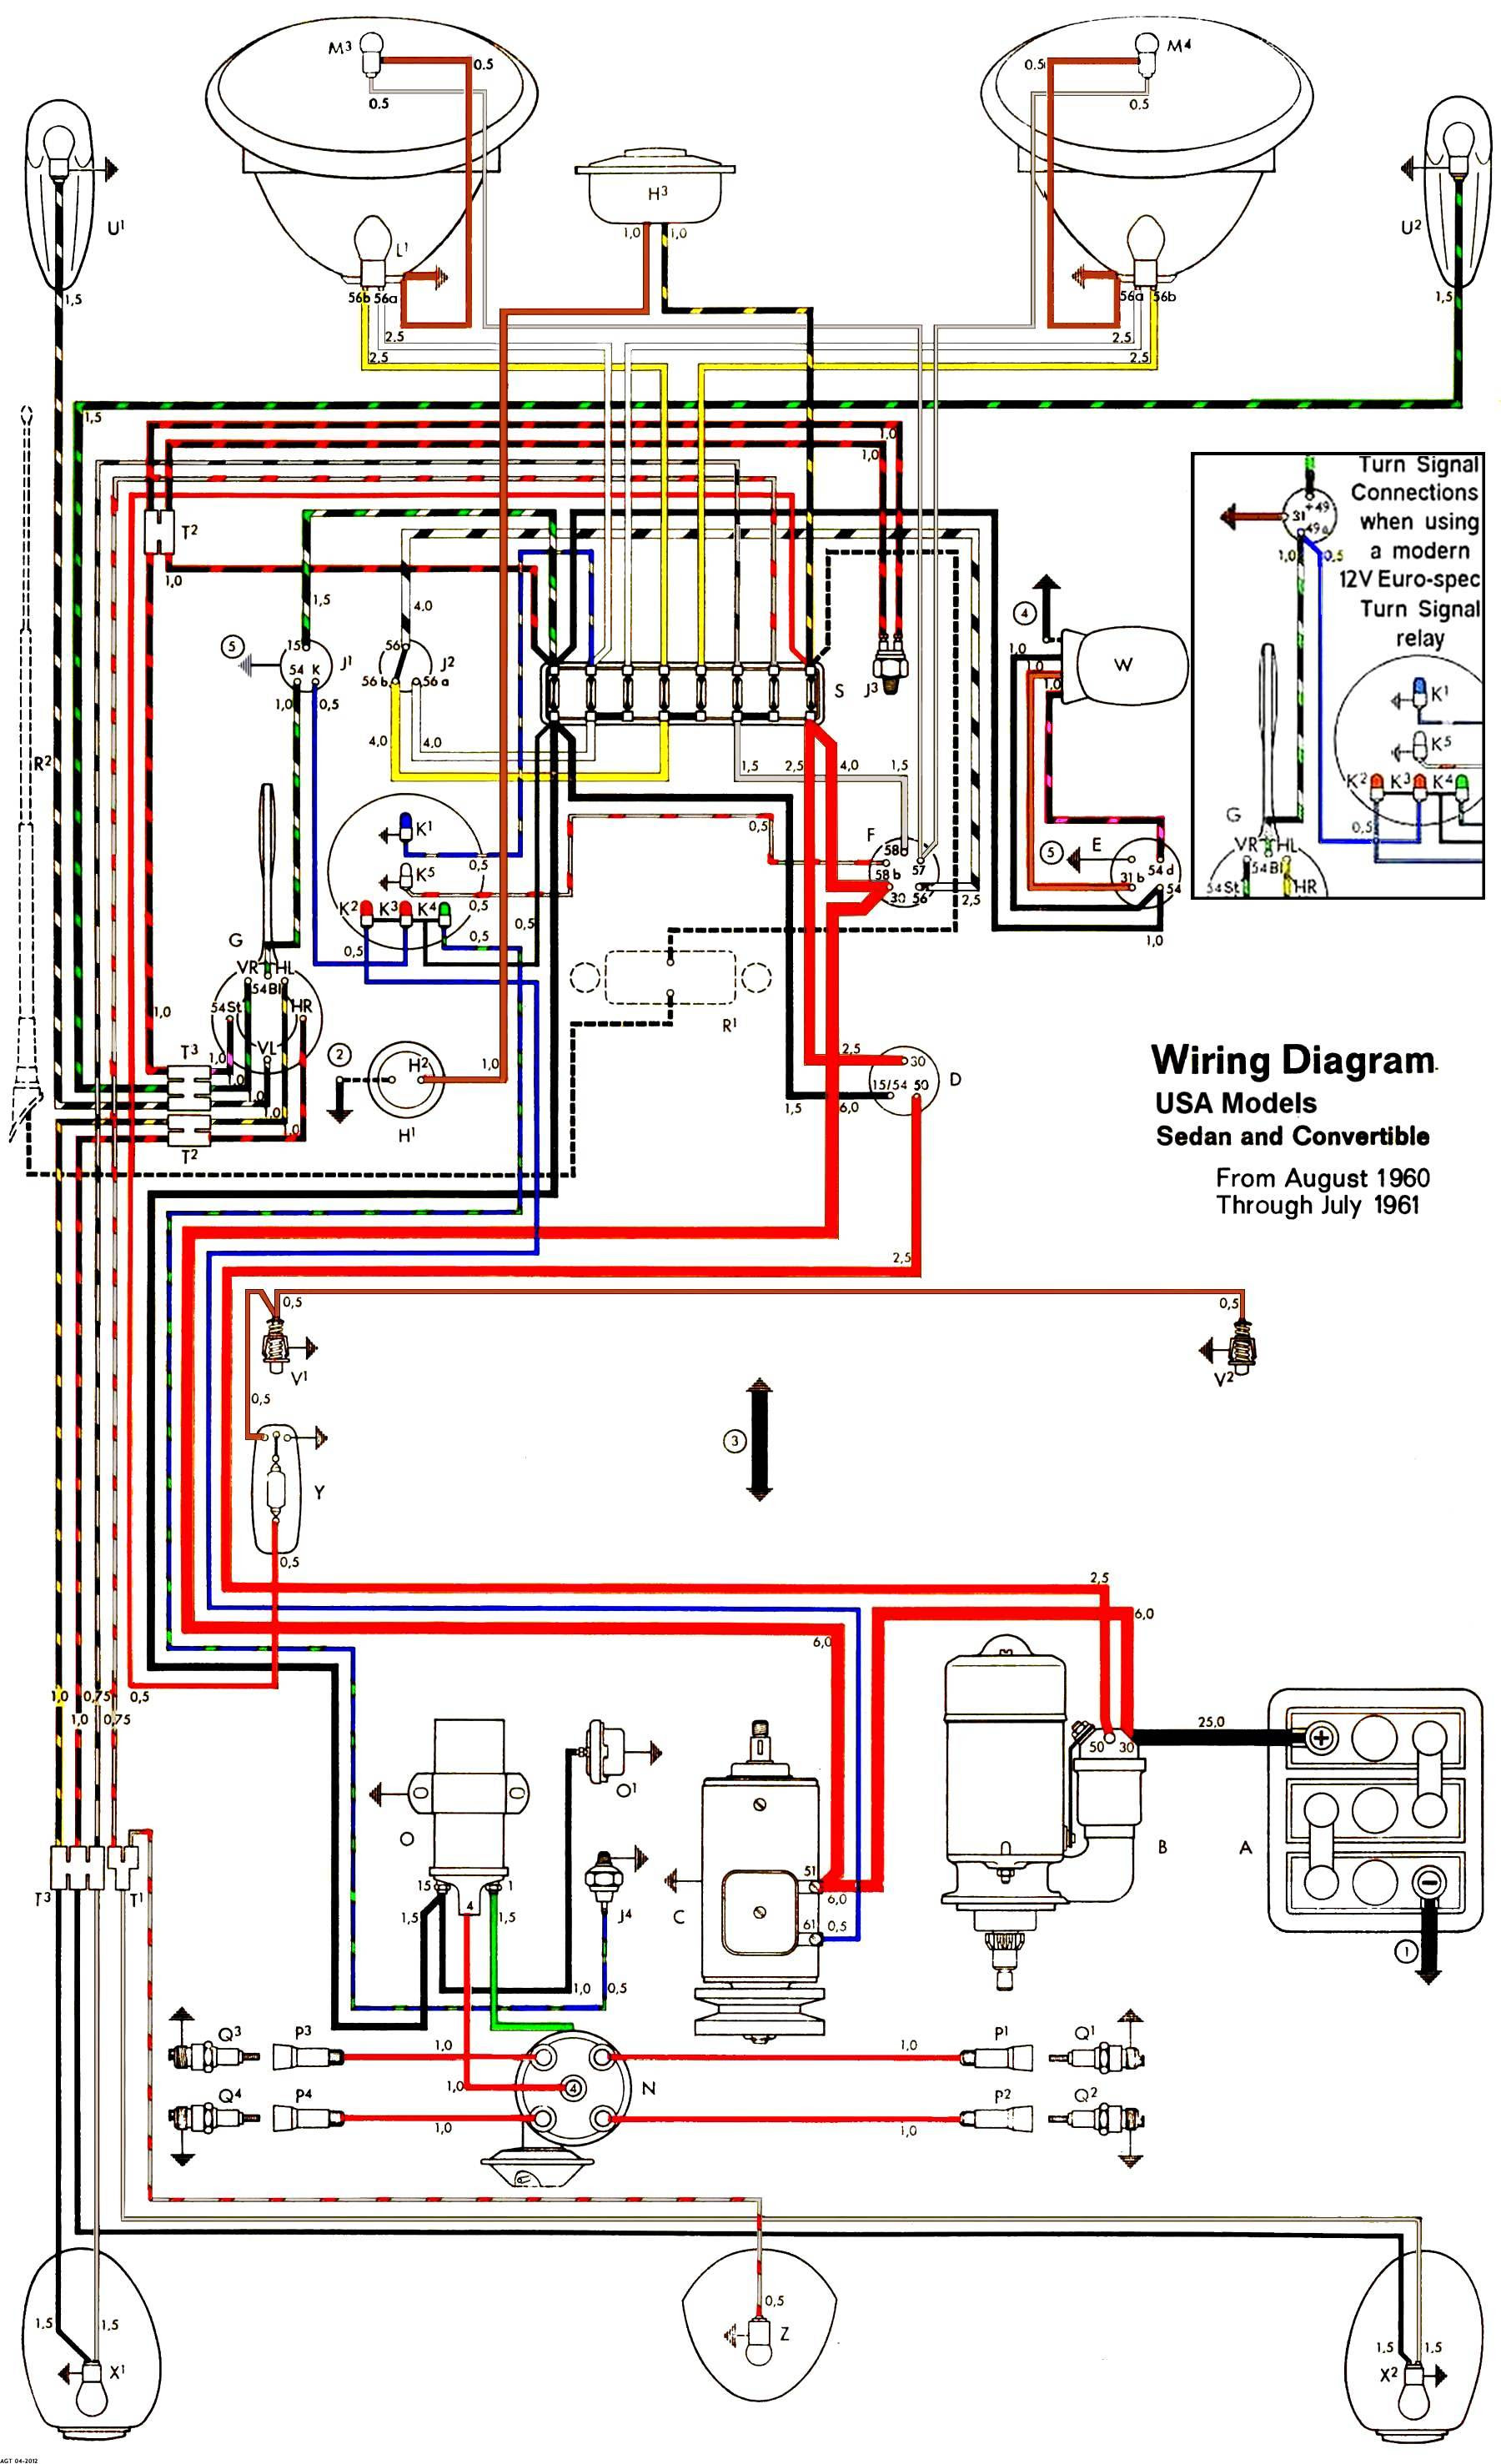 Diagram  Vw Polo Classic Fuse Box Location Wiring Diagram Full Version Hd Quality Wiring